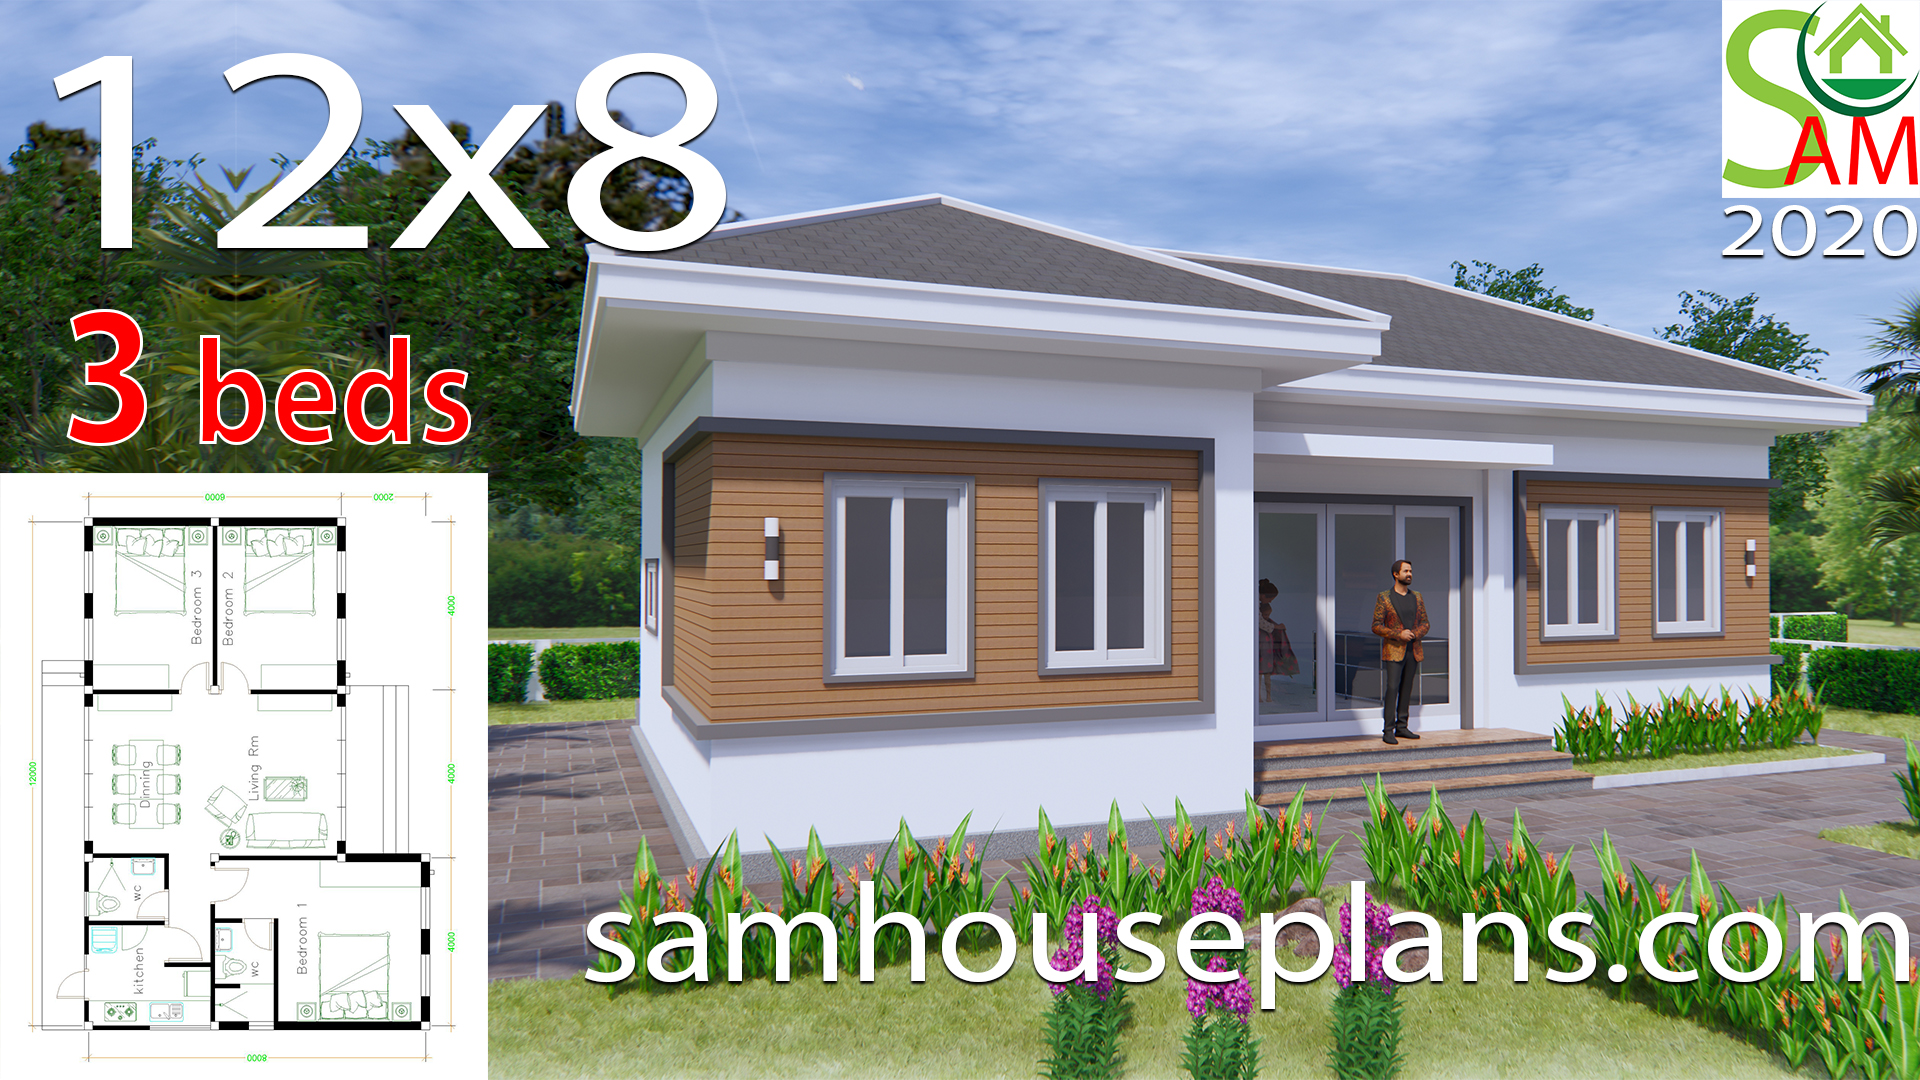 House Plans 12x8 With 3 Bedrooms Hip Roof Samhouseplans